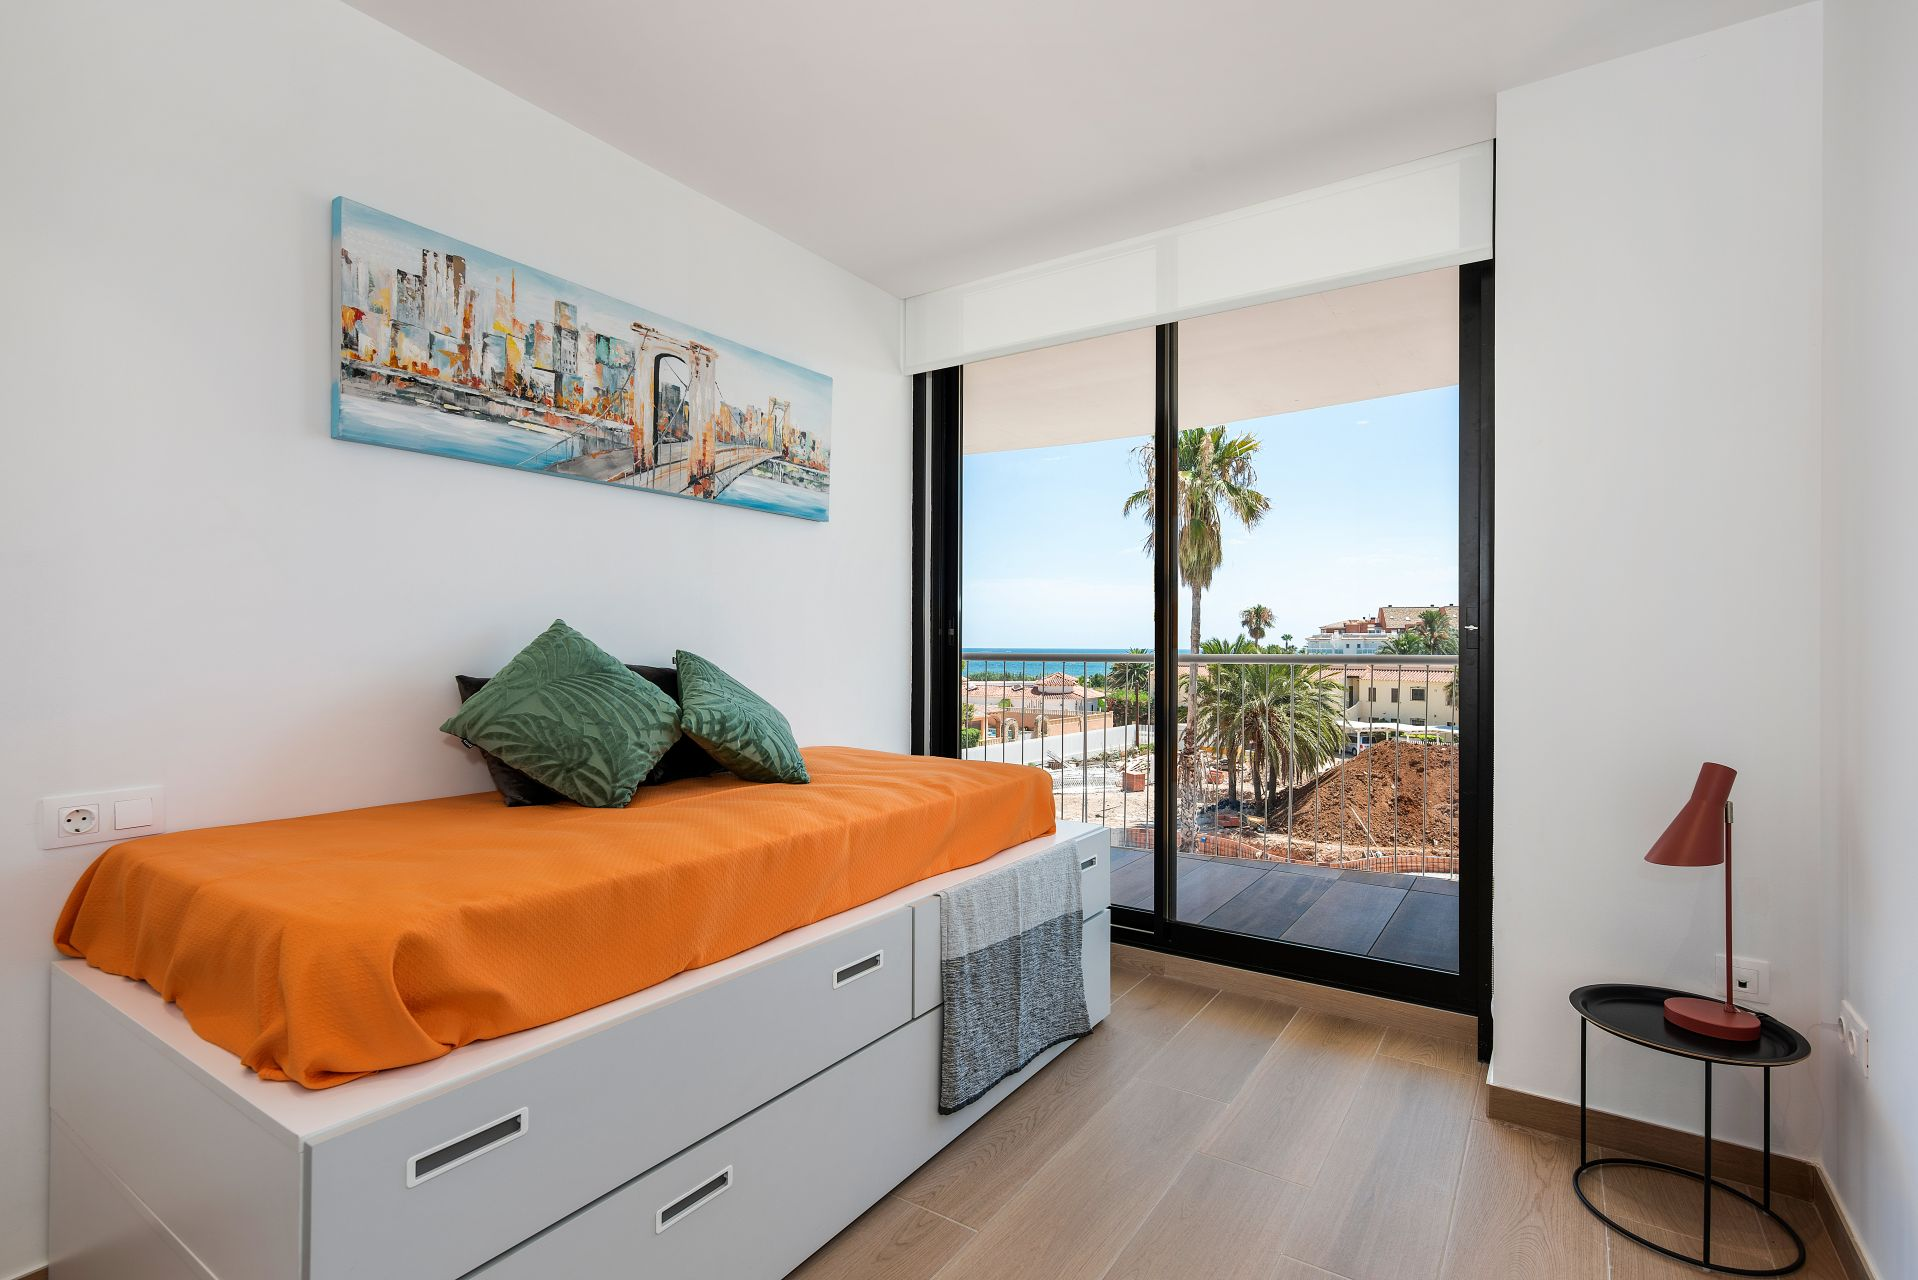 Denia Beach - 1, 2 and 3 bedroom apartments with terrace overlooking the sea or with views over the Montgó mountain, at the beach of La Almadraba beach 26